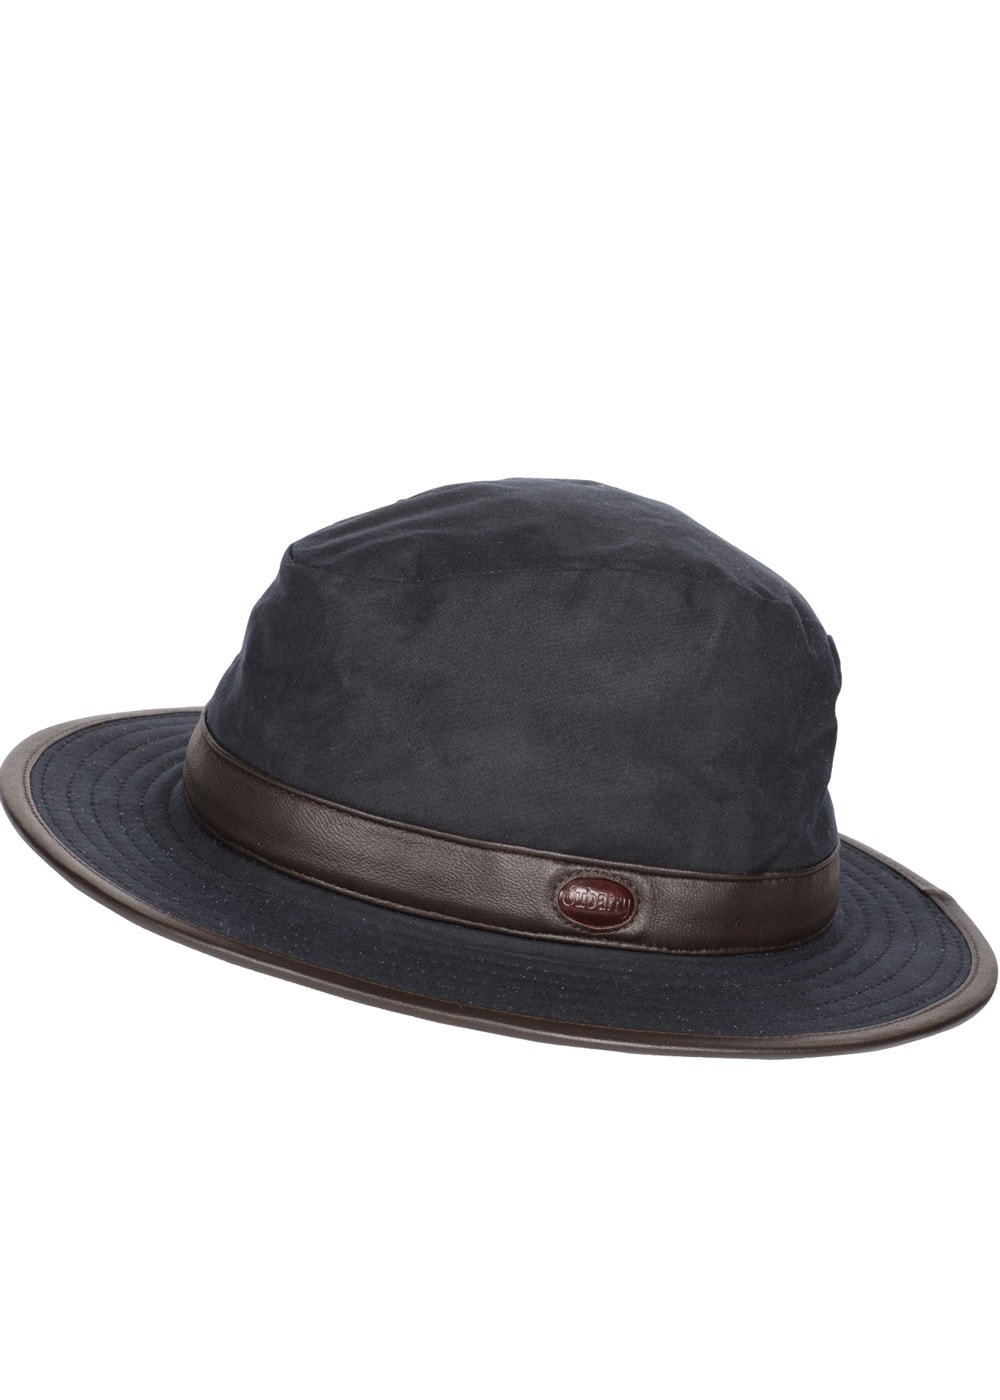 Dubarry Dromod Wax Hat - Ladies from A Hume UK 740f5fea6d3